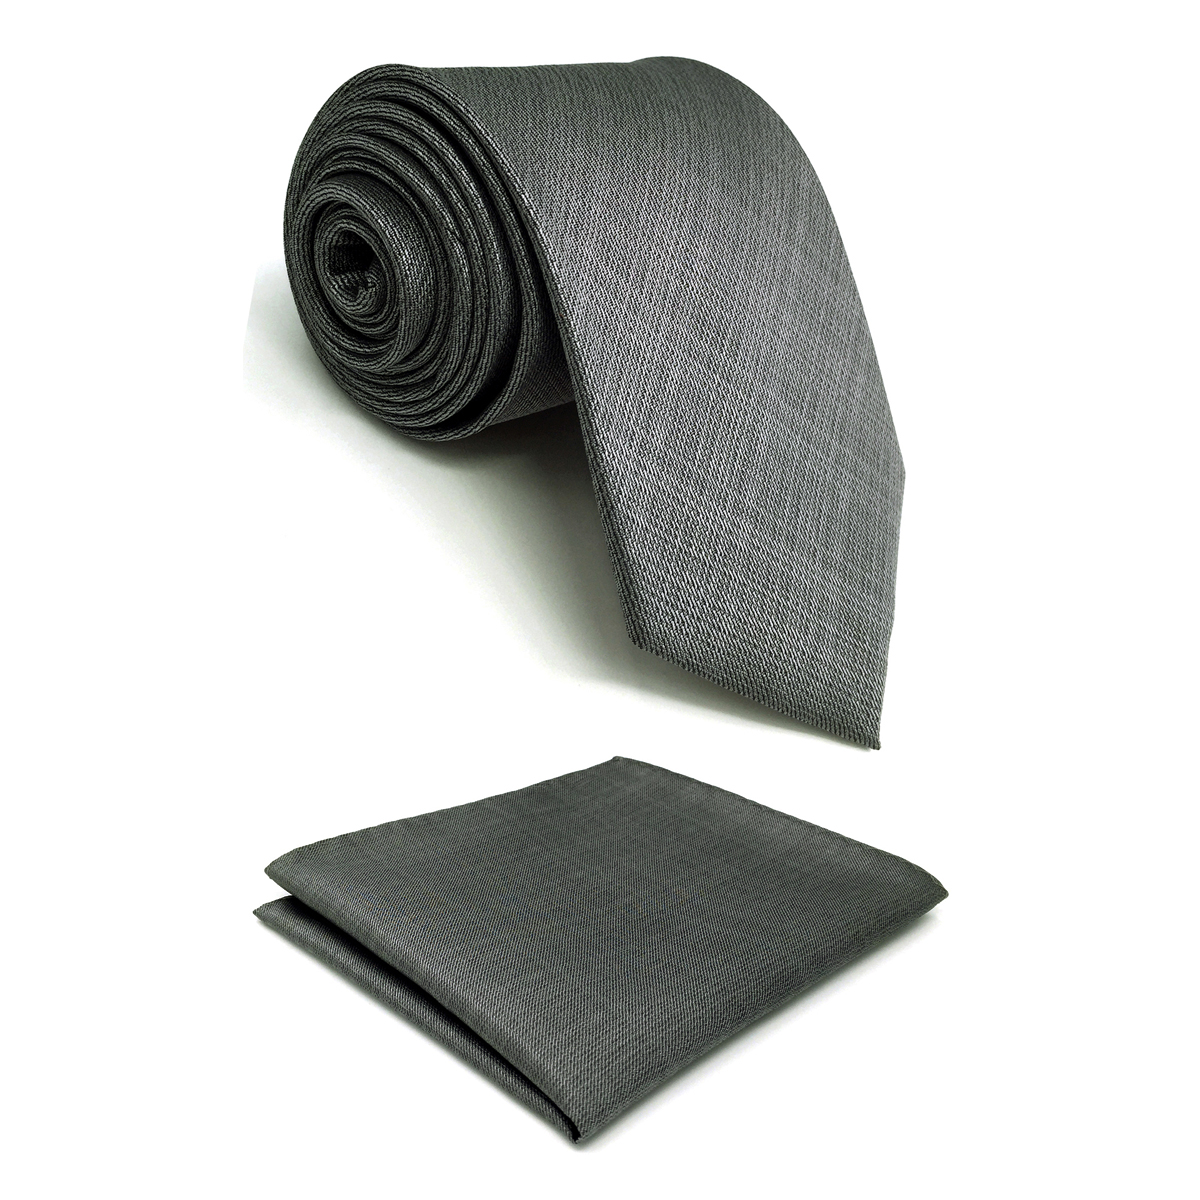 C20 Gray Solid Silk Mens Necktie Set Fashion Wedding Acceossories Hanky Brand New Extra Long Size Ties For Male